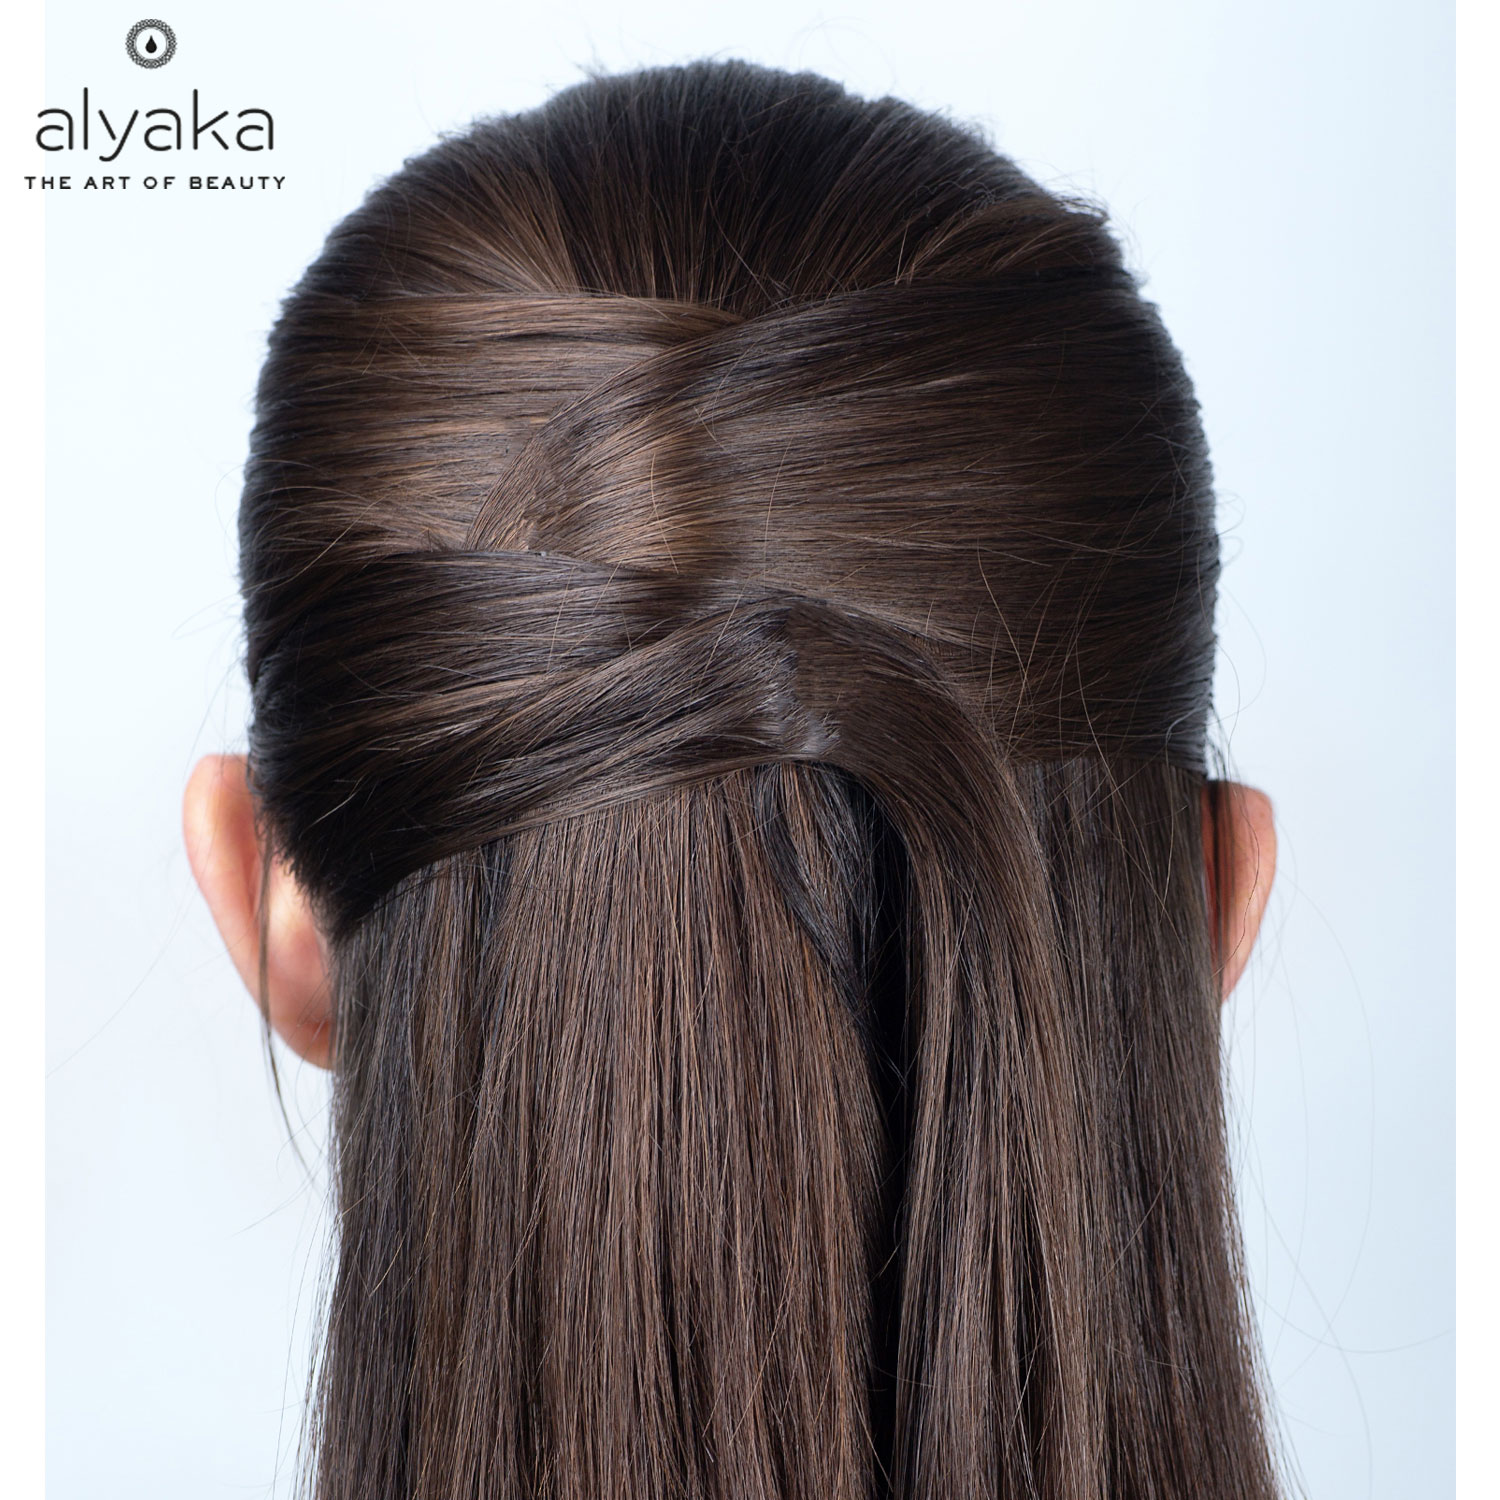 10 Easy Hairstyles for Busy Women  Alyaka